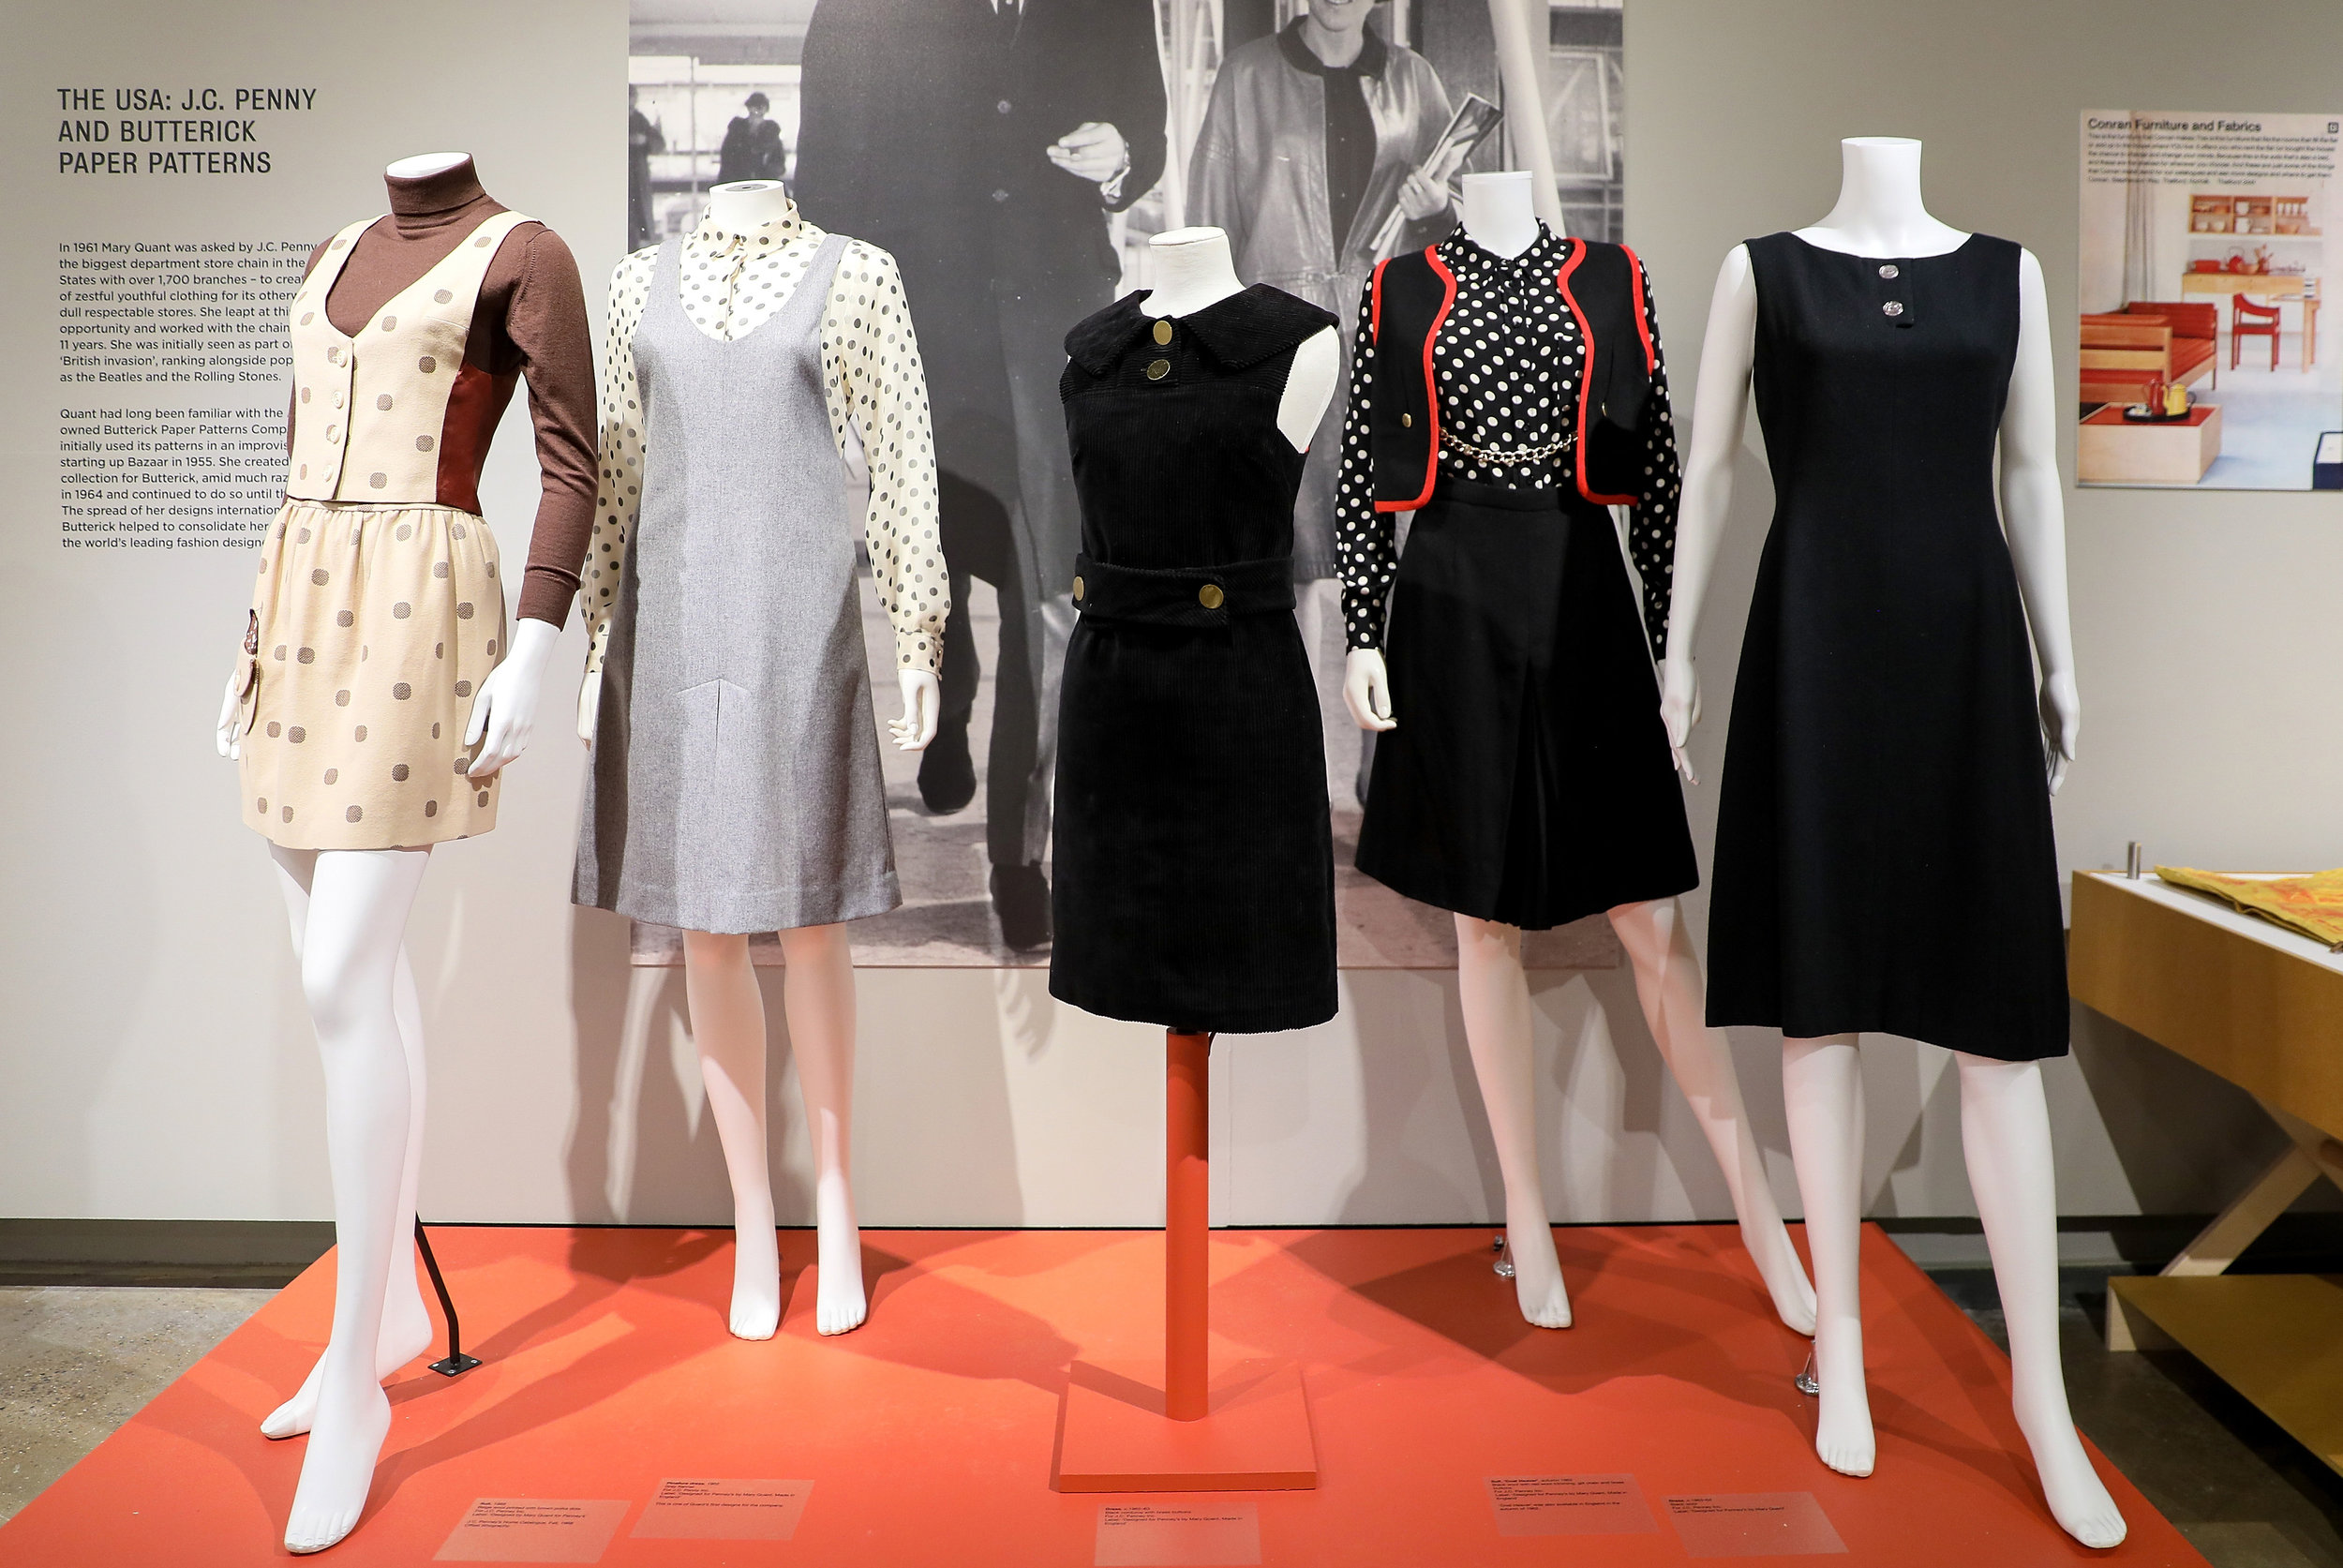 Photo courtesy of the Fashion and Textile Museum, London